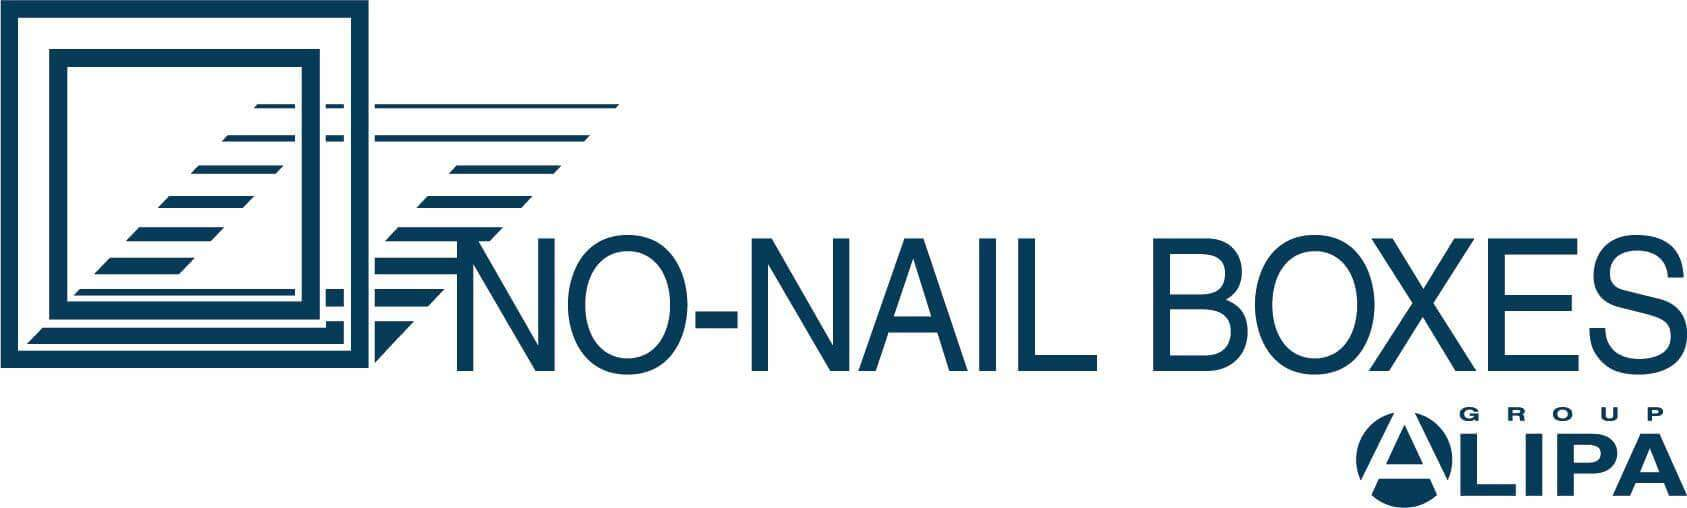 No-Nail Boxes logo print version